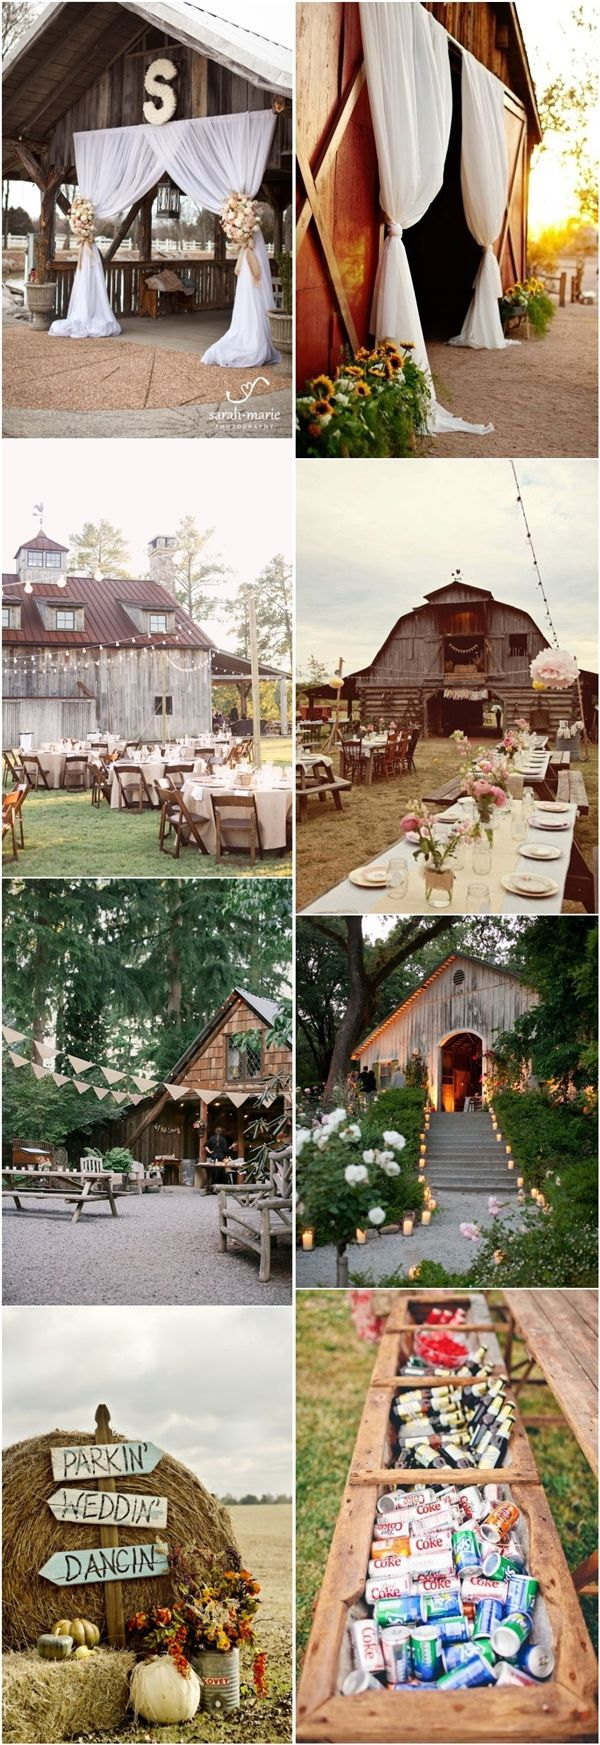 rustic outdoor wedding ideas- country barn wedding decor ideas - Deer Pearl Flowers